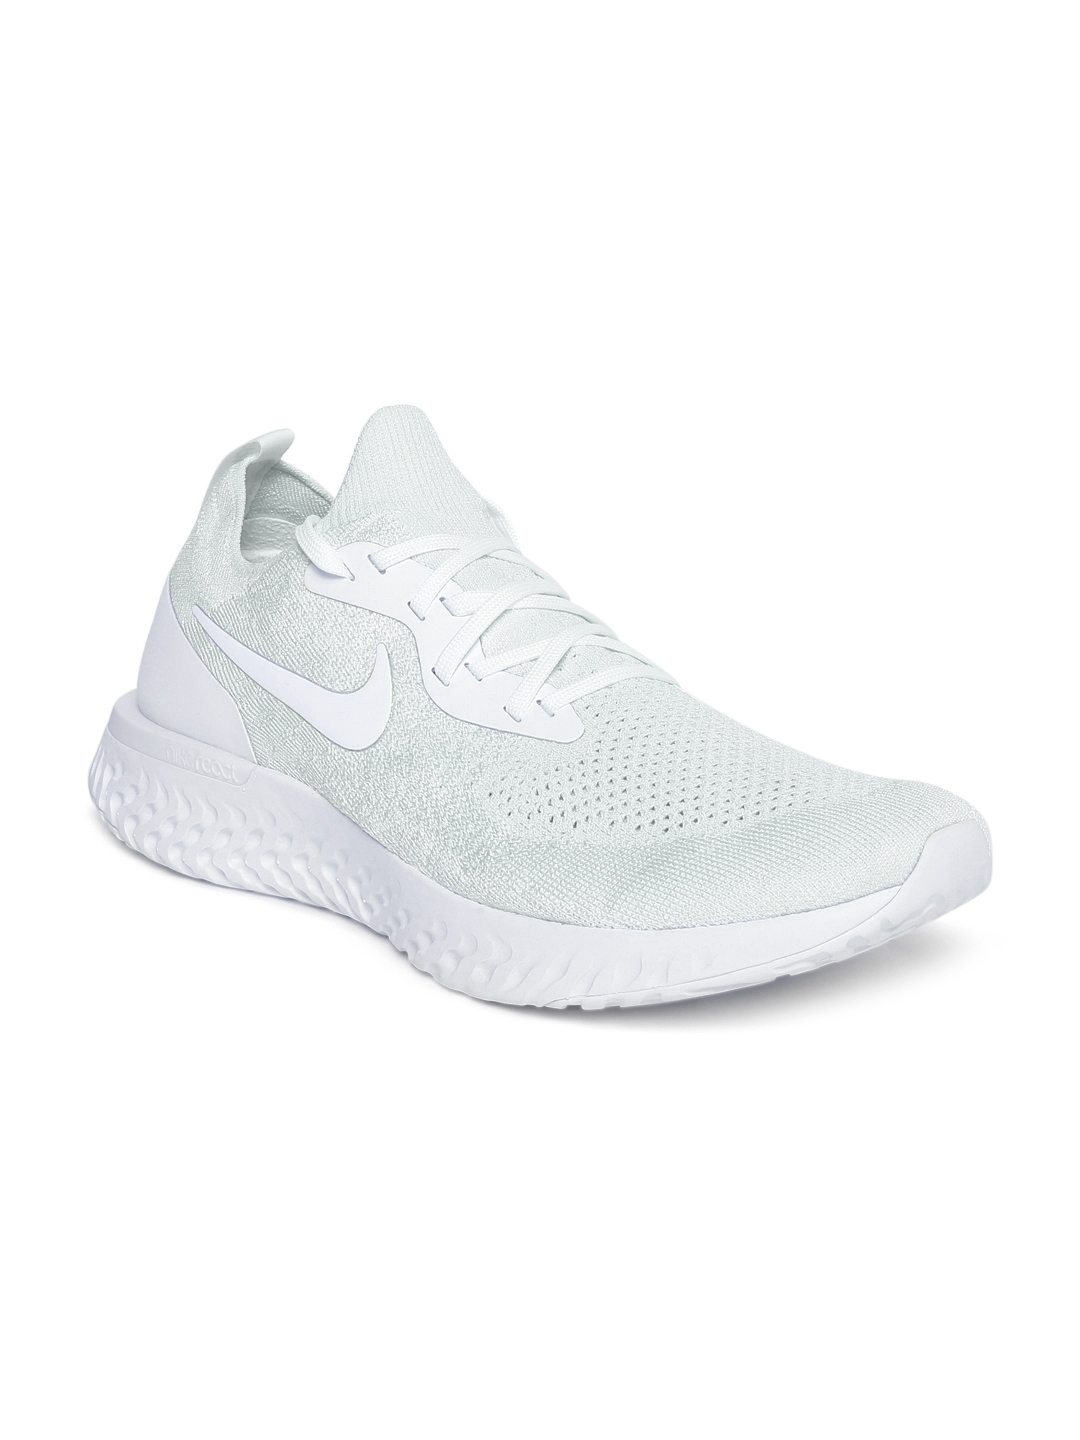 04d9960402ebd Buy Nike Men White Epic React Flyknit Running Shoes - Sports Shoes ...